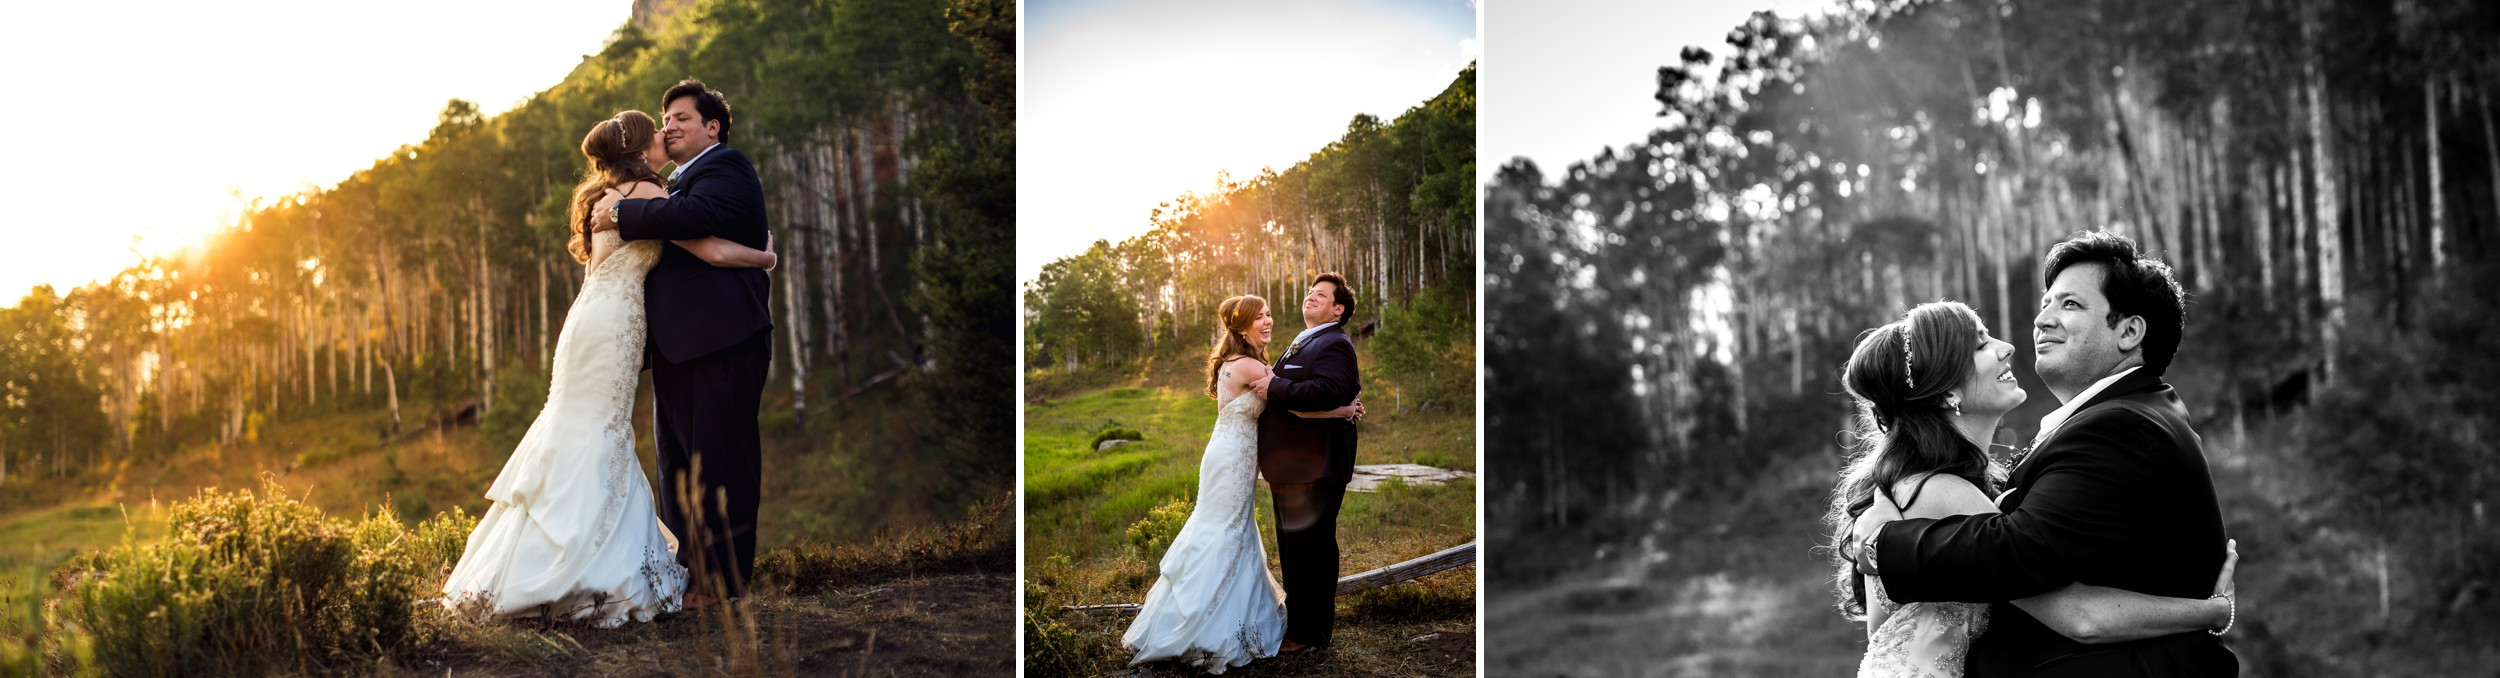 Piney_River_Ranch_Vail_Colorado_Wedding_Kristopher_Lindsay_Photography 16.jpg